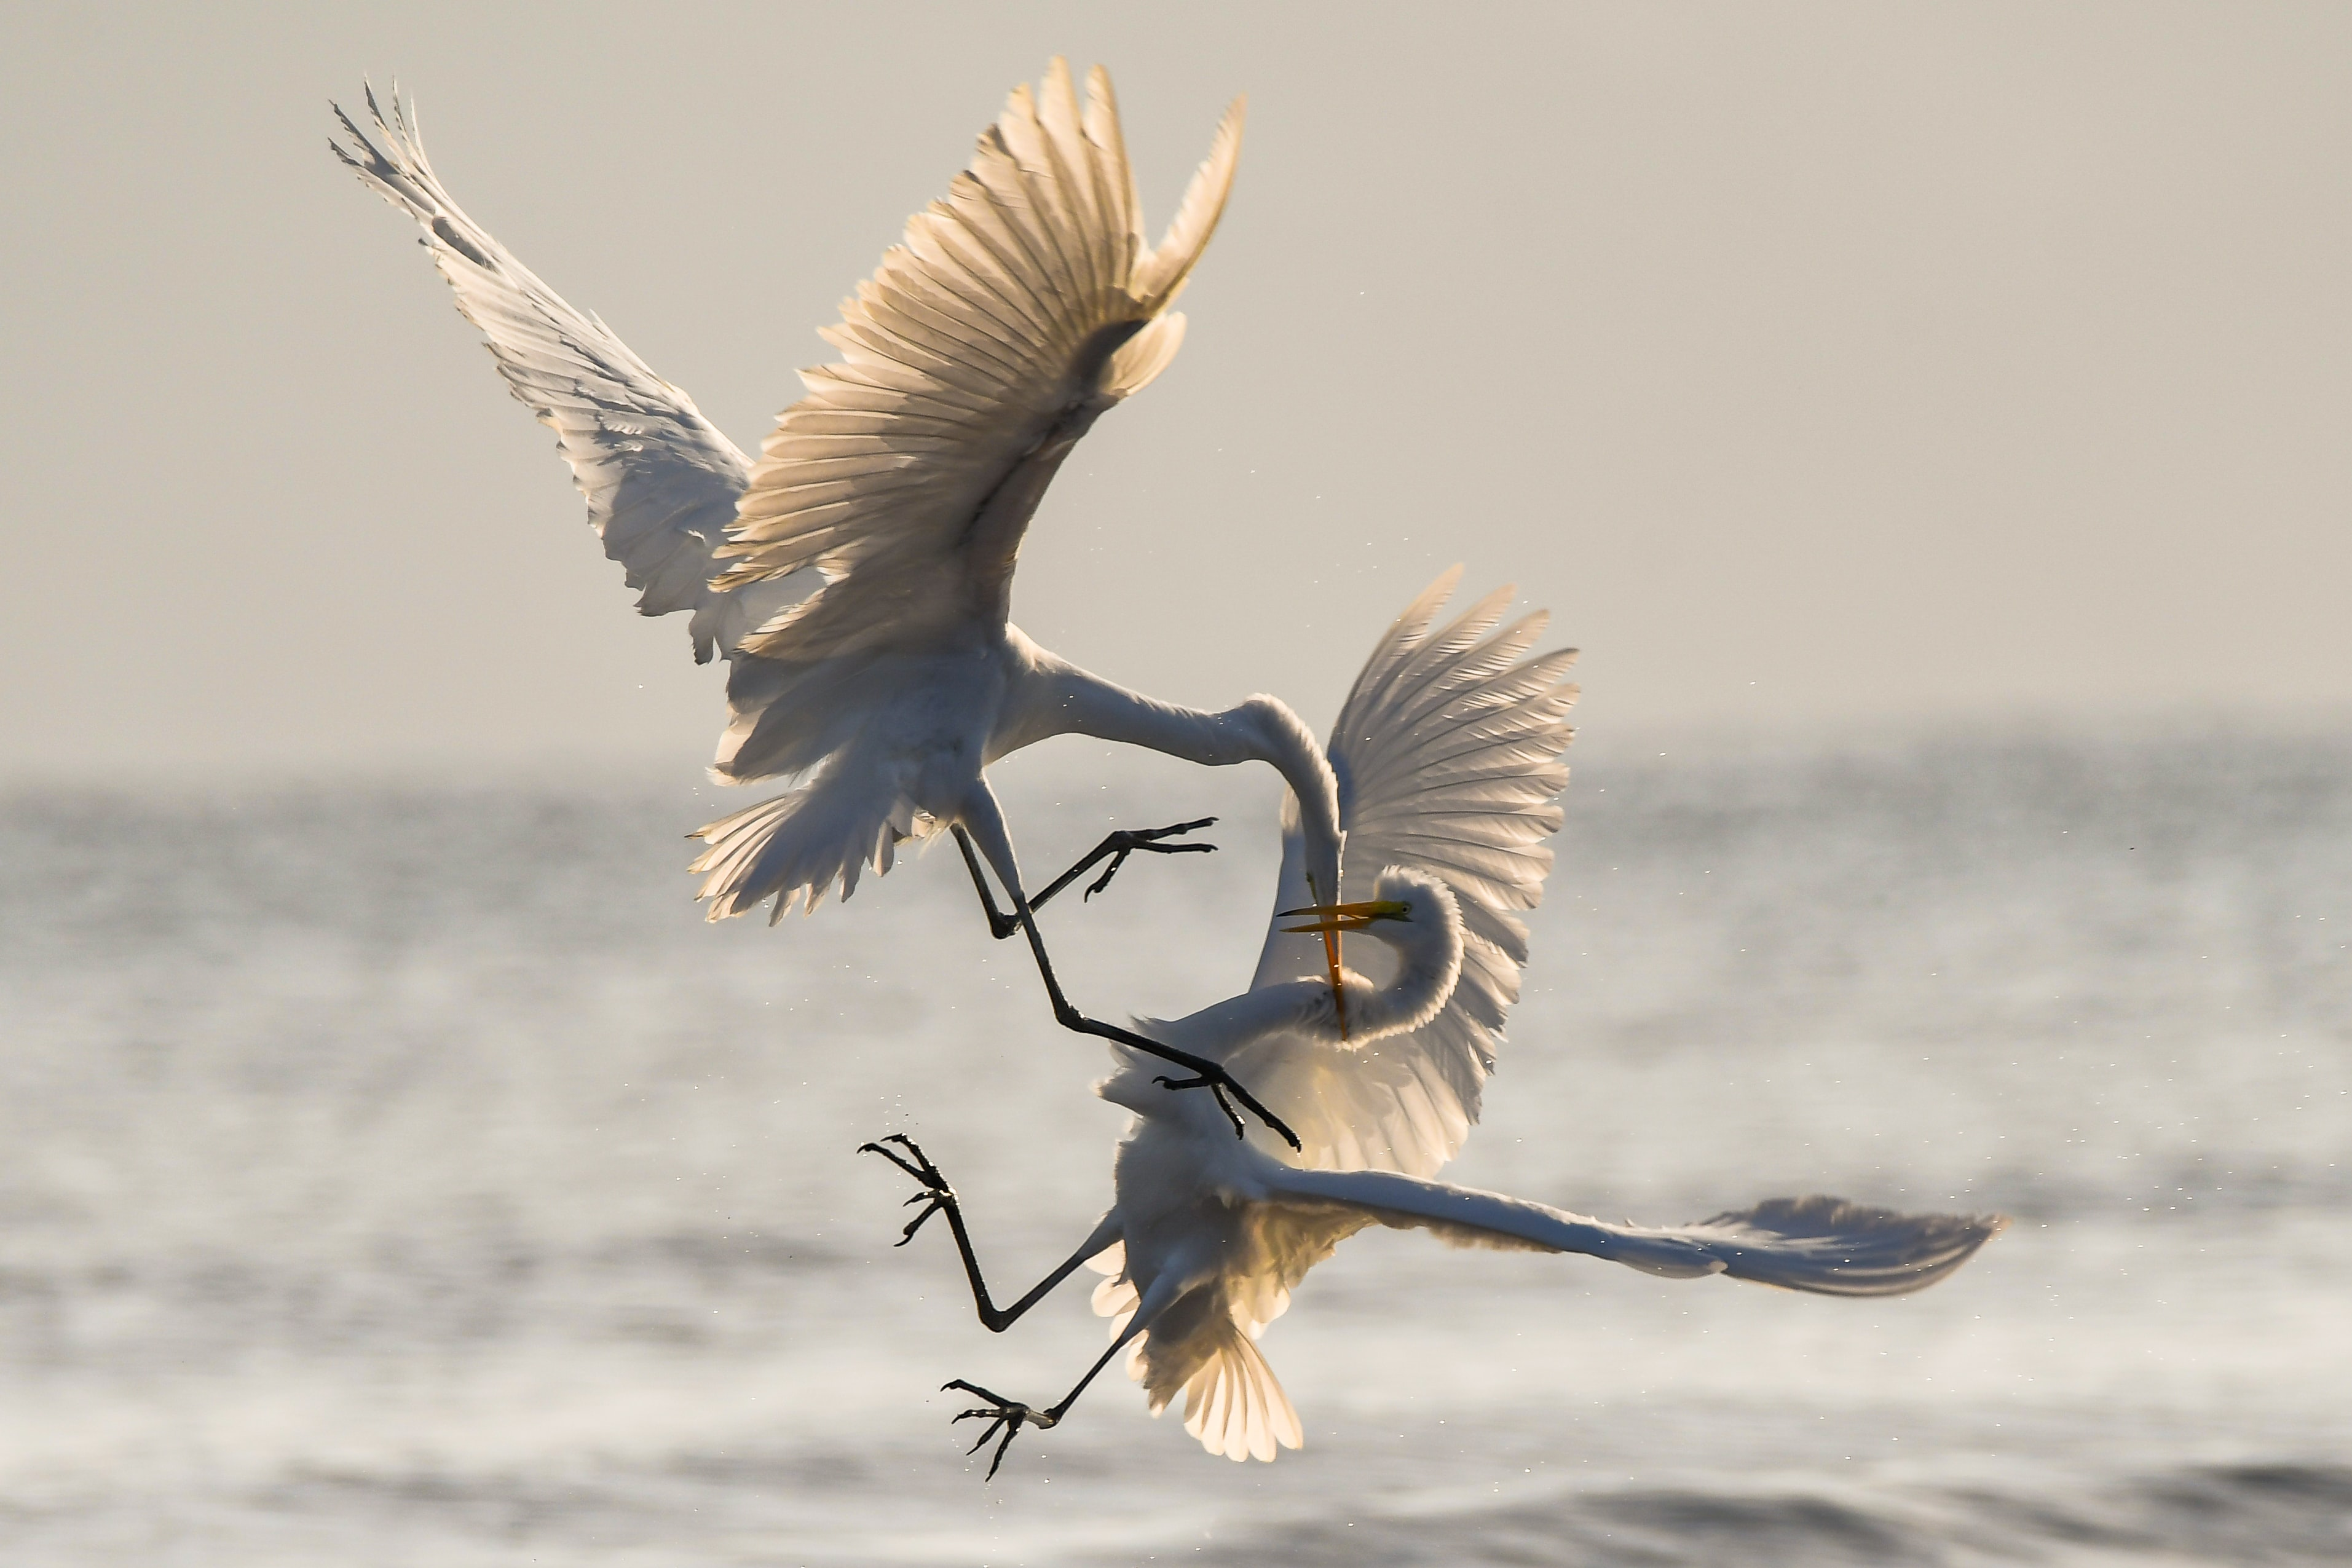 Two birds fighting